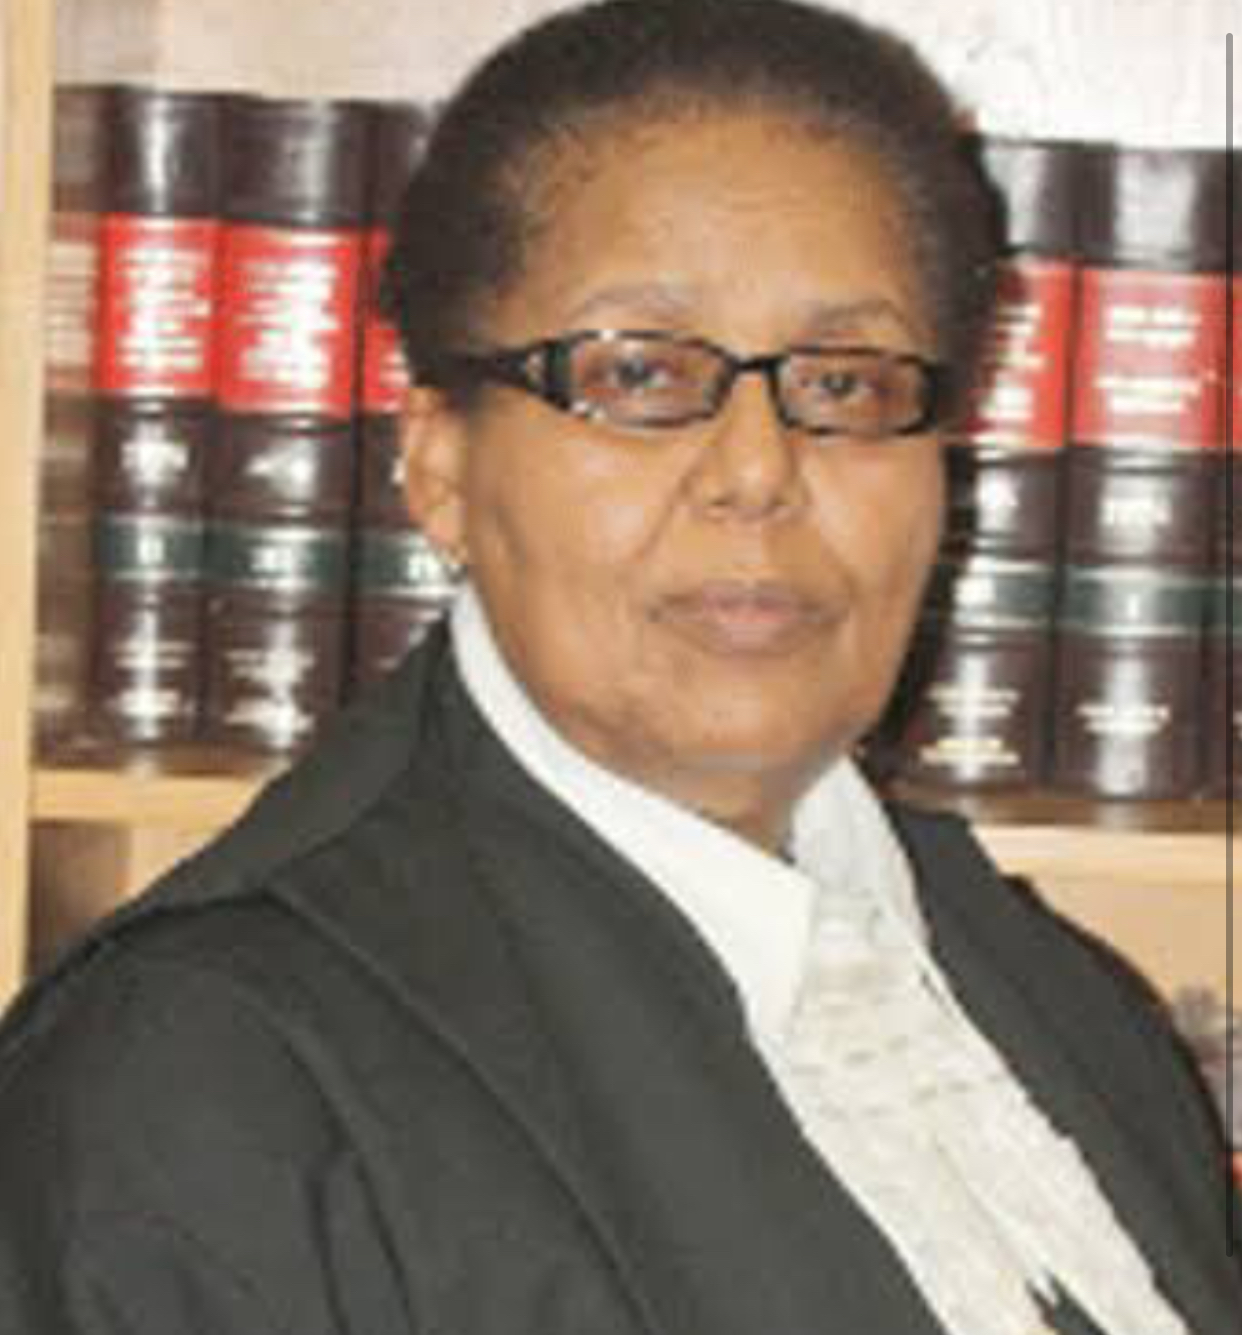 Exclusive interview with Judge Qinisile Mabuza : Judiciary must promote fundamental rights and freedoms including rights of women.